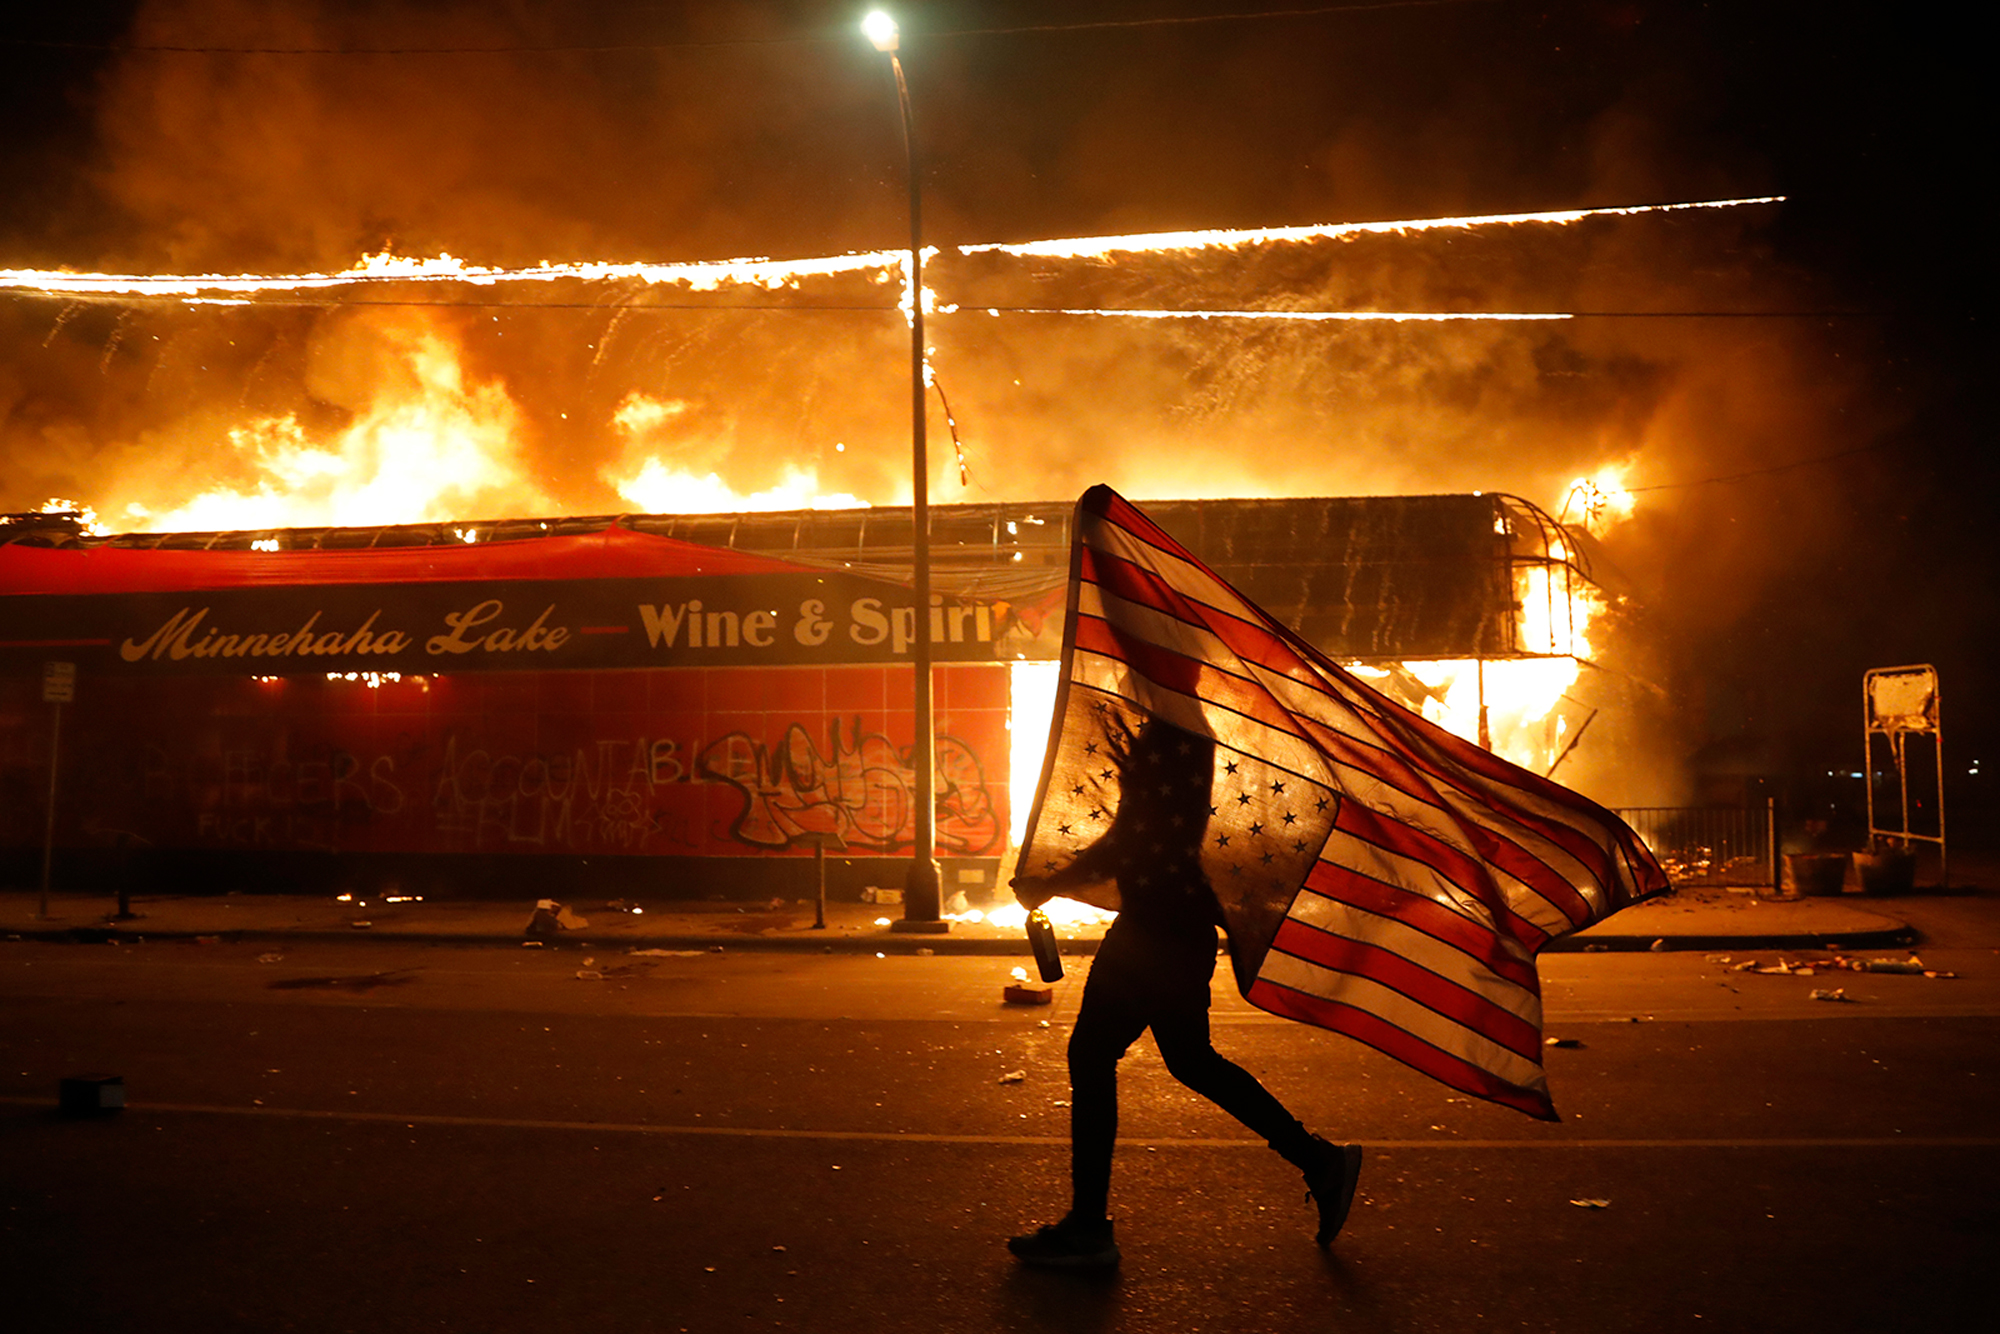 A protester carries the carries a U.S. flag upside-down, a sign of distress, next to a burning building on May 28, in Minneapolis.